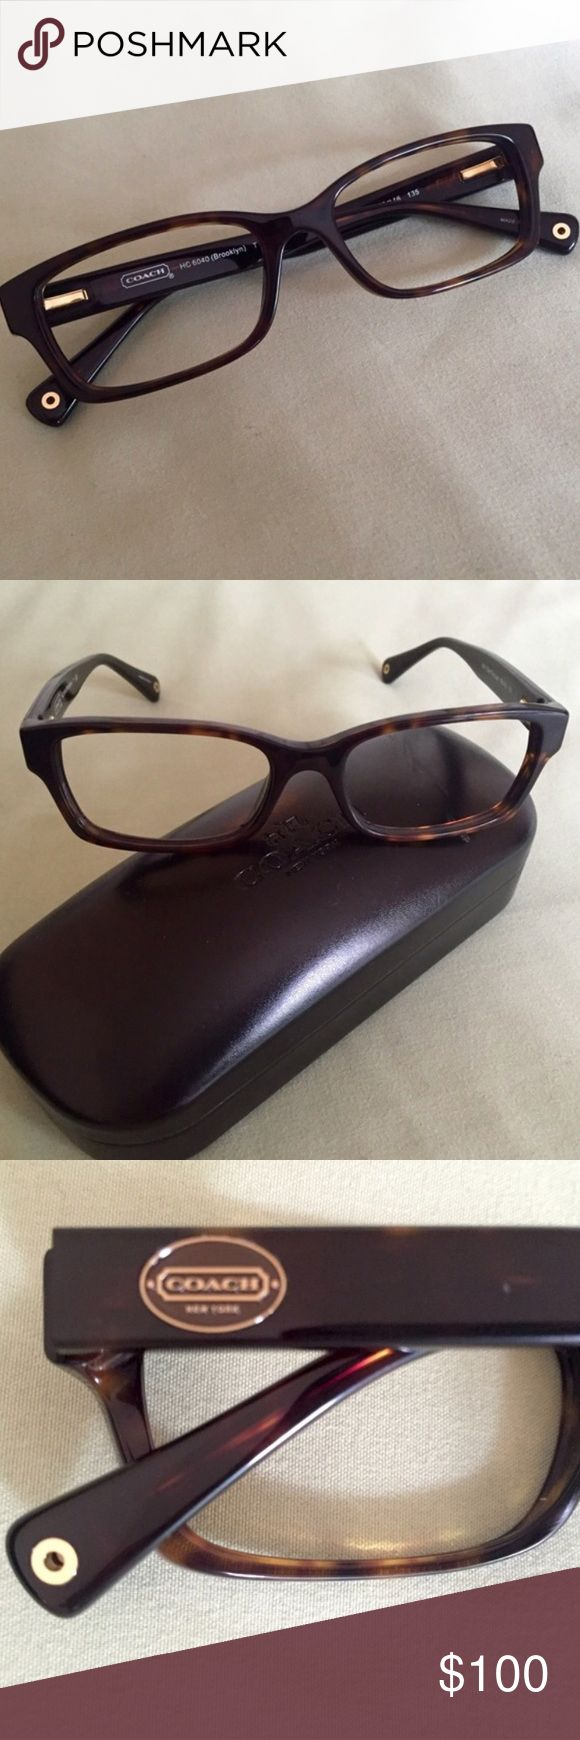 .:COACH RX GLASSES:. Coach prescription glasses frame in dark tortoise with gold accents. 50-16-135 Coach 1640 (Brooklyn) This does not come with the demo lenses. Frame is in awesome condition, only sign of wear is a scuff on the top of the case that I will include with order. Coach Accessories Glasses